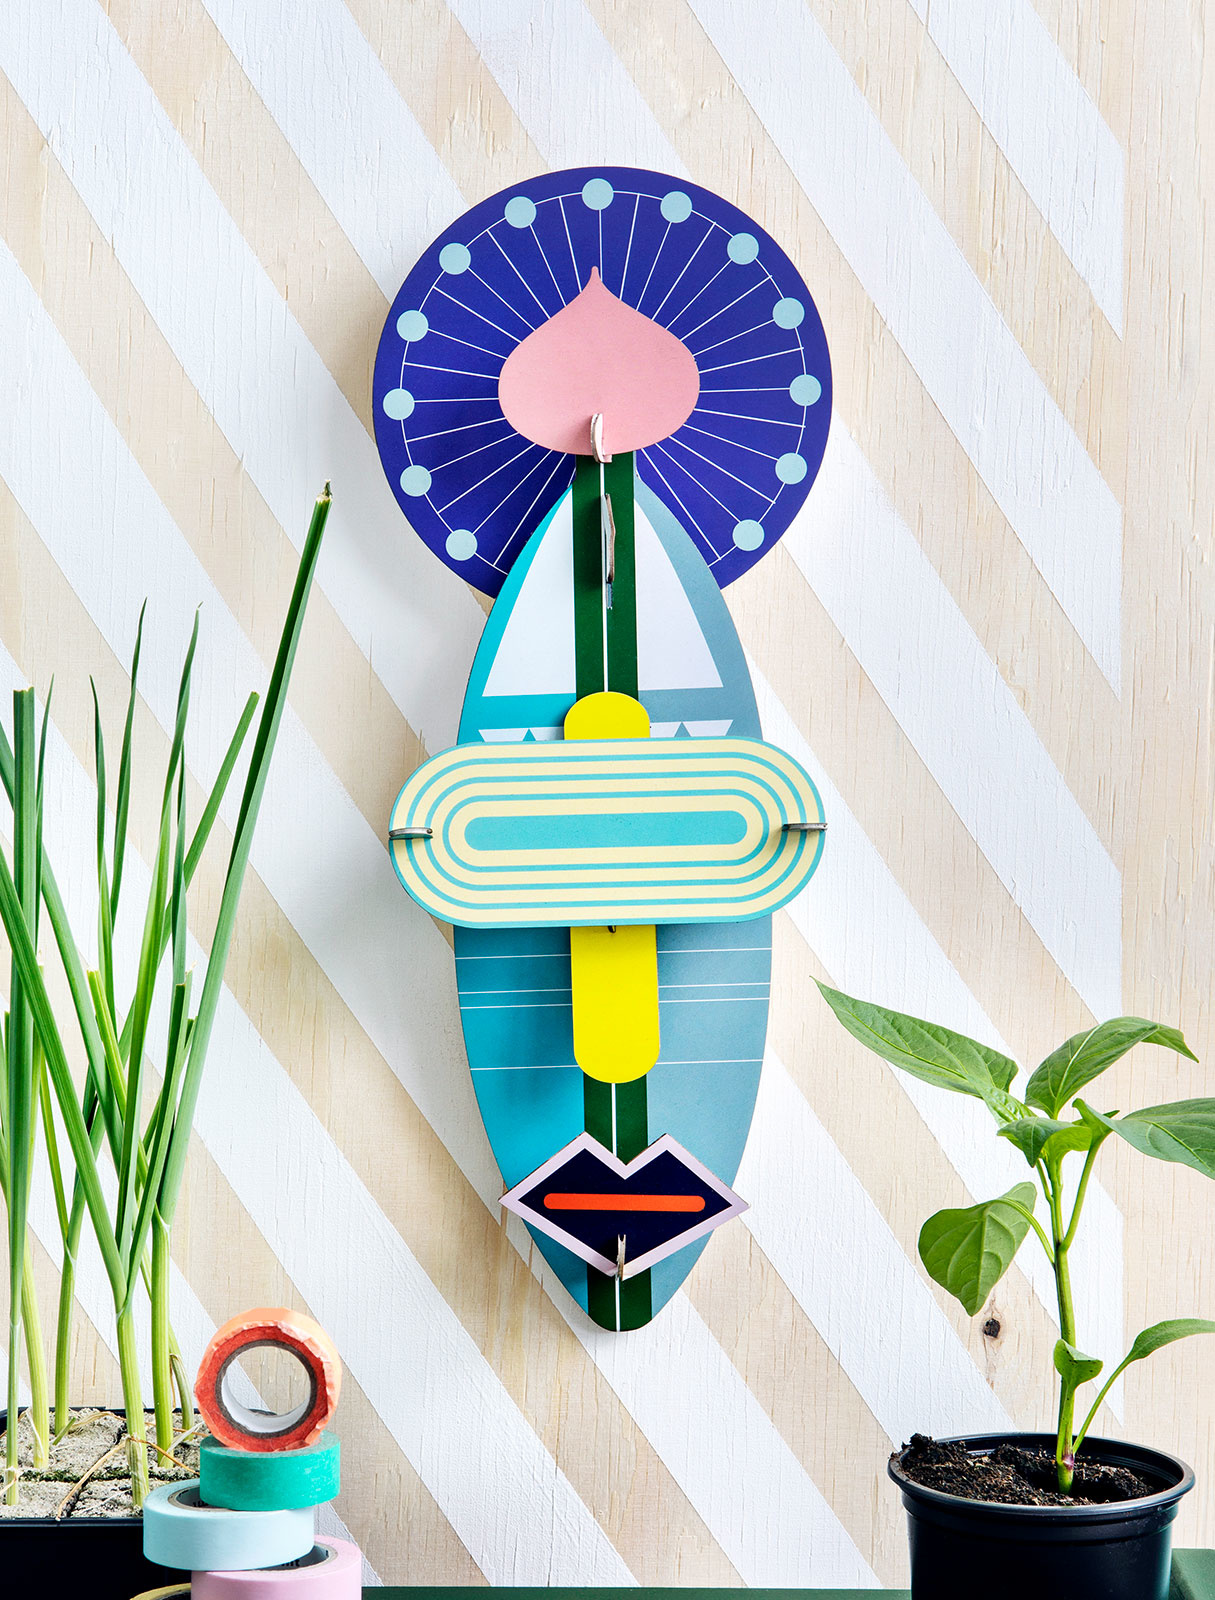 Studio Roof 3D Wall Decoration Cosmos Mask